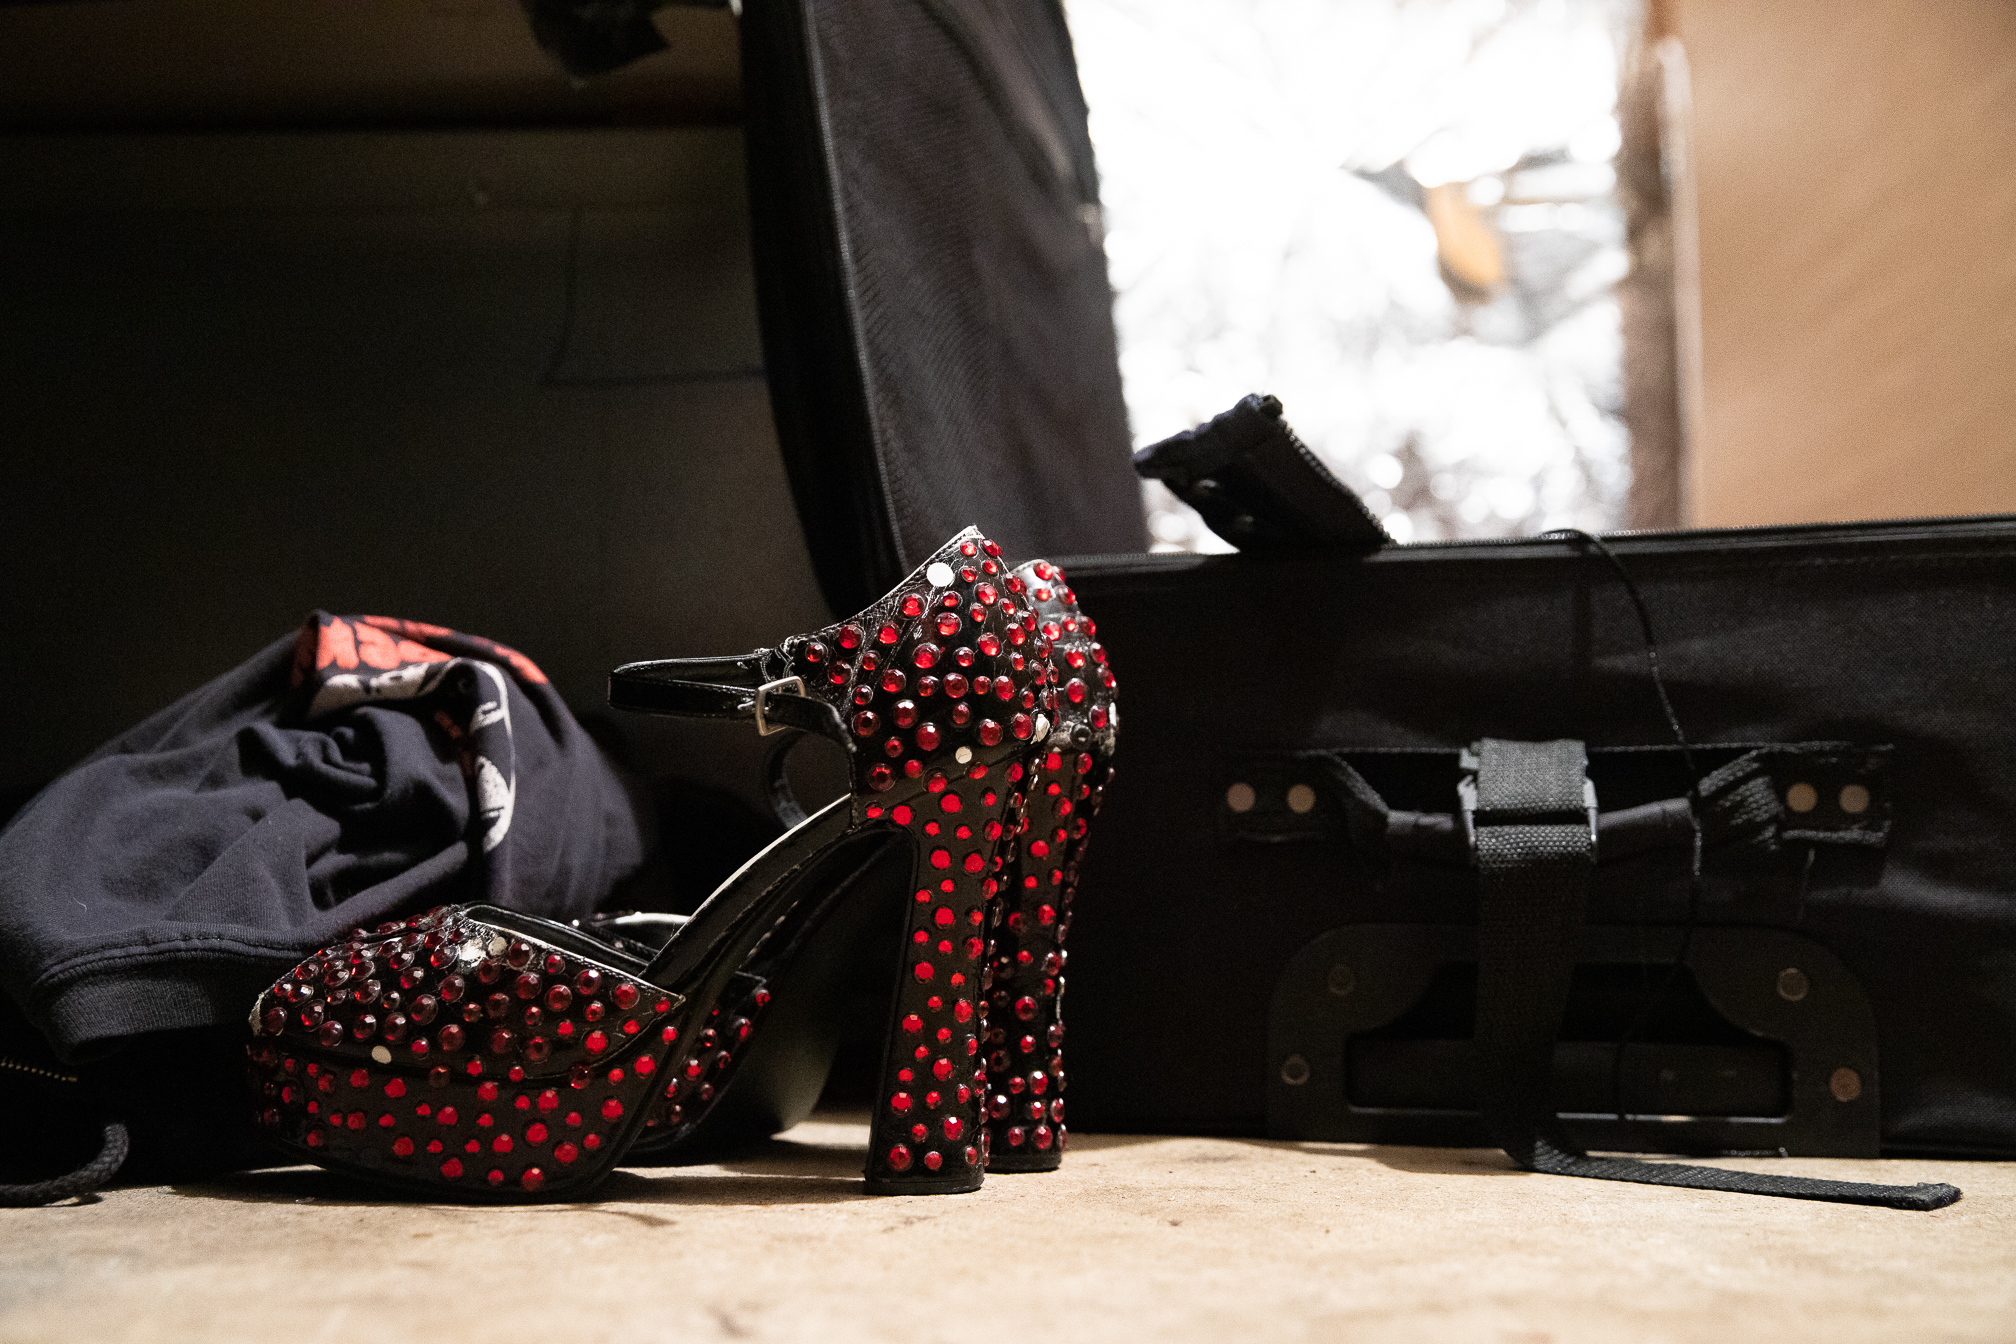 Michael Delfino's high heels for the role of Dr. Frank-N-Furter.